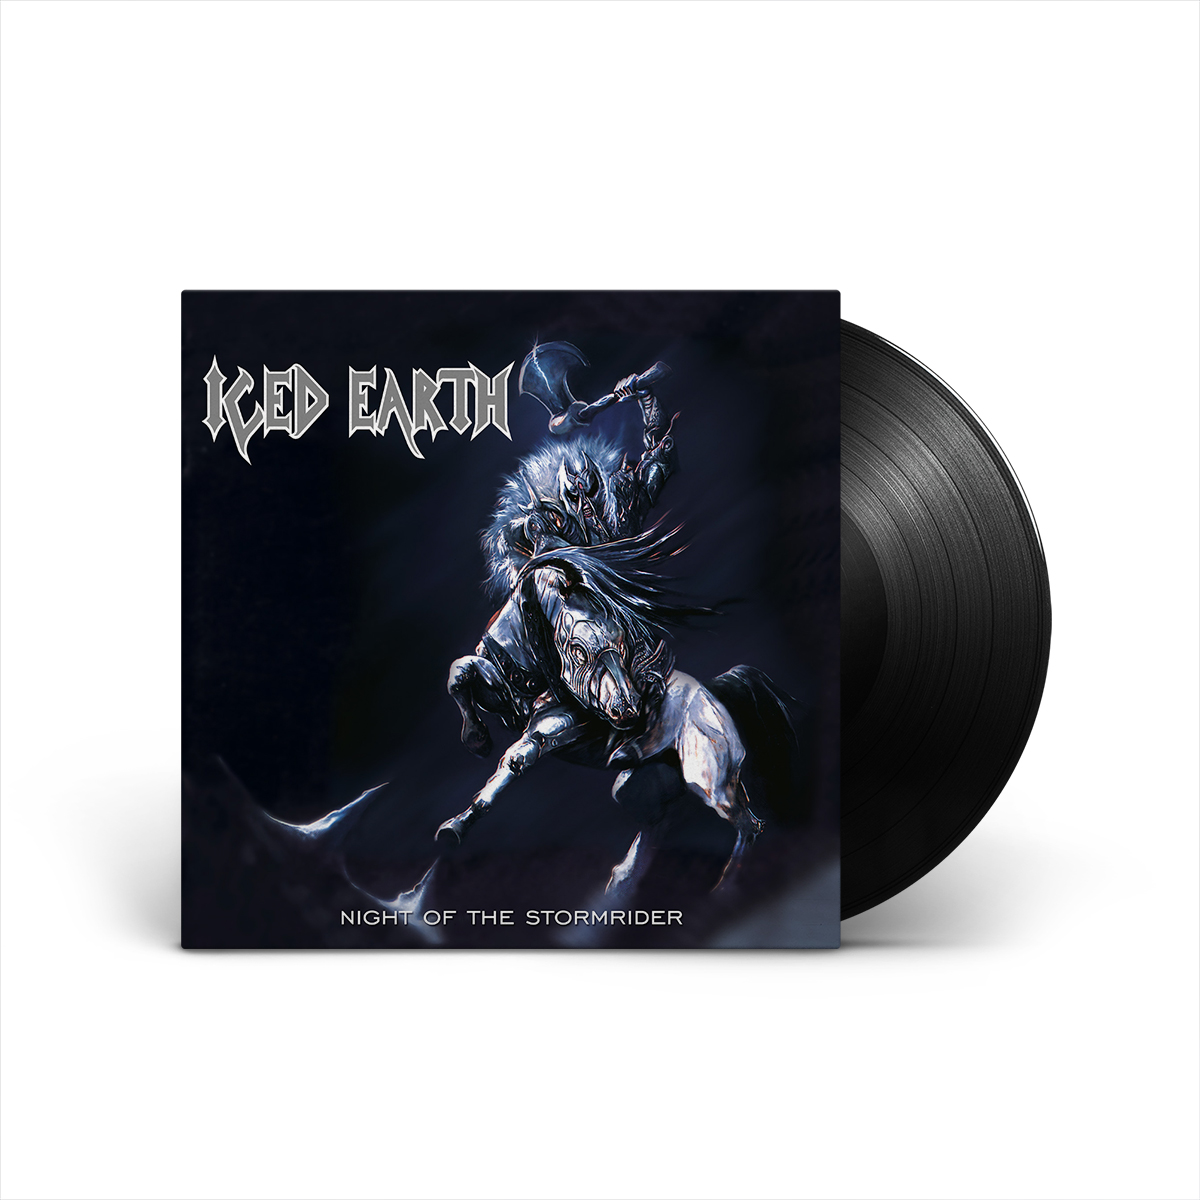 Iced Earth - Night Of The Stormrider (Re-issue) LP + Poster